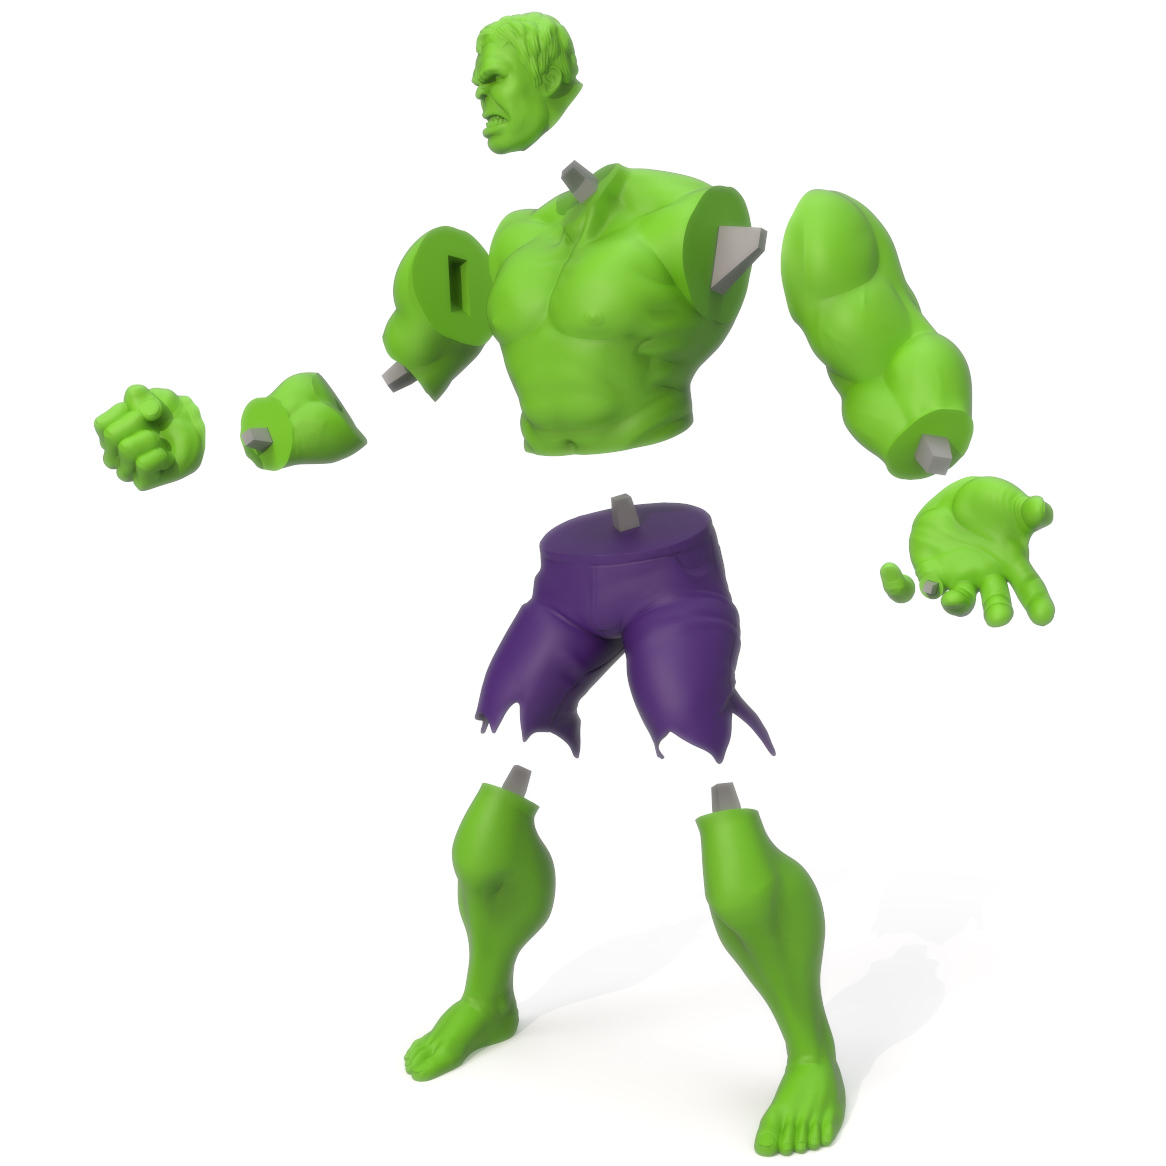 Hulk Exploded, 3D Printer Models